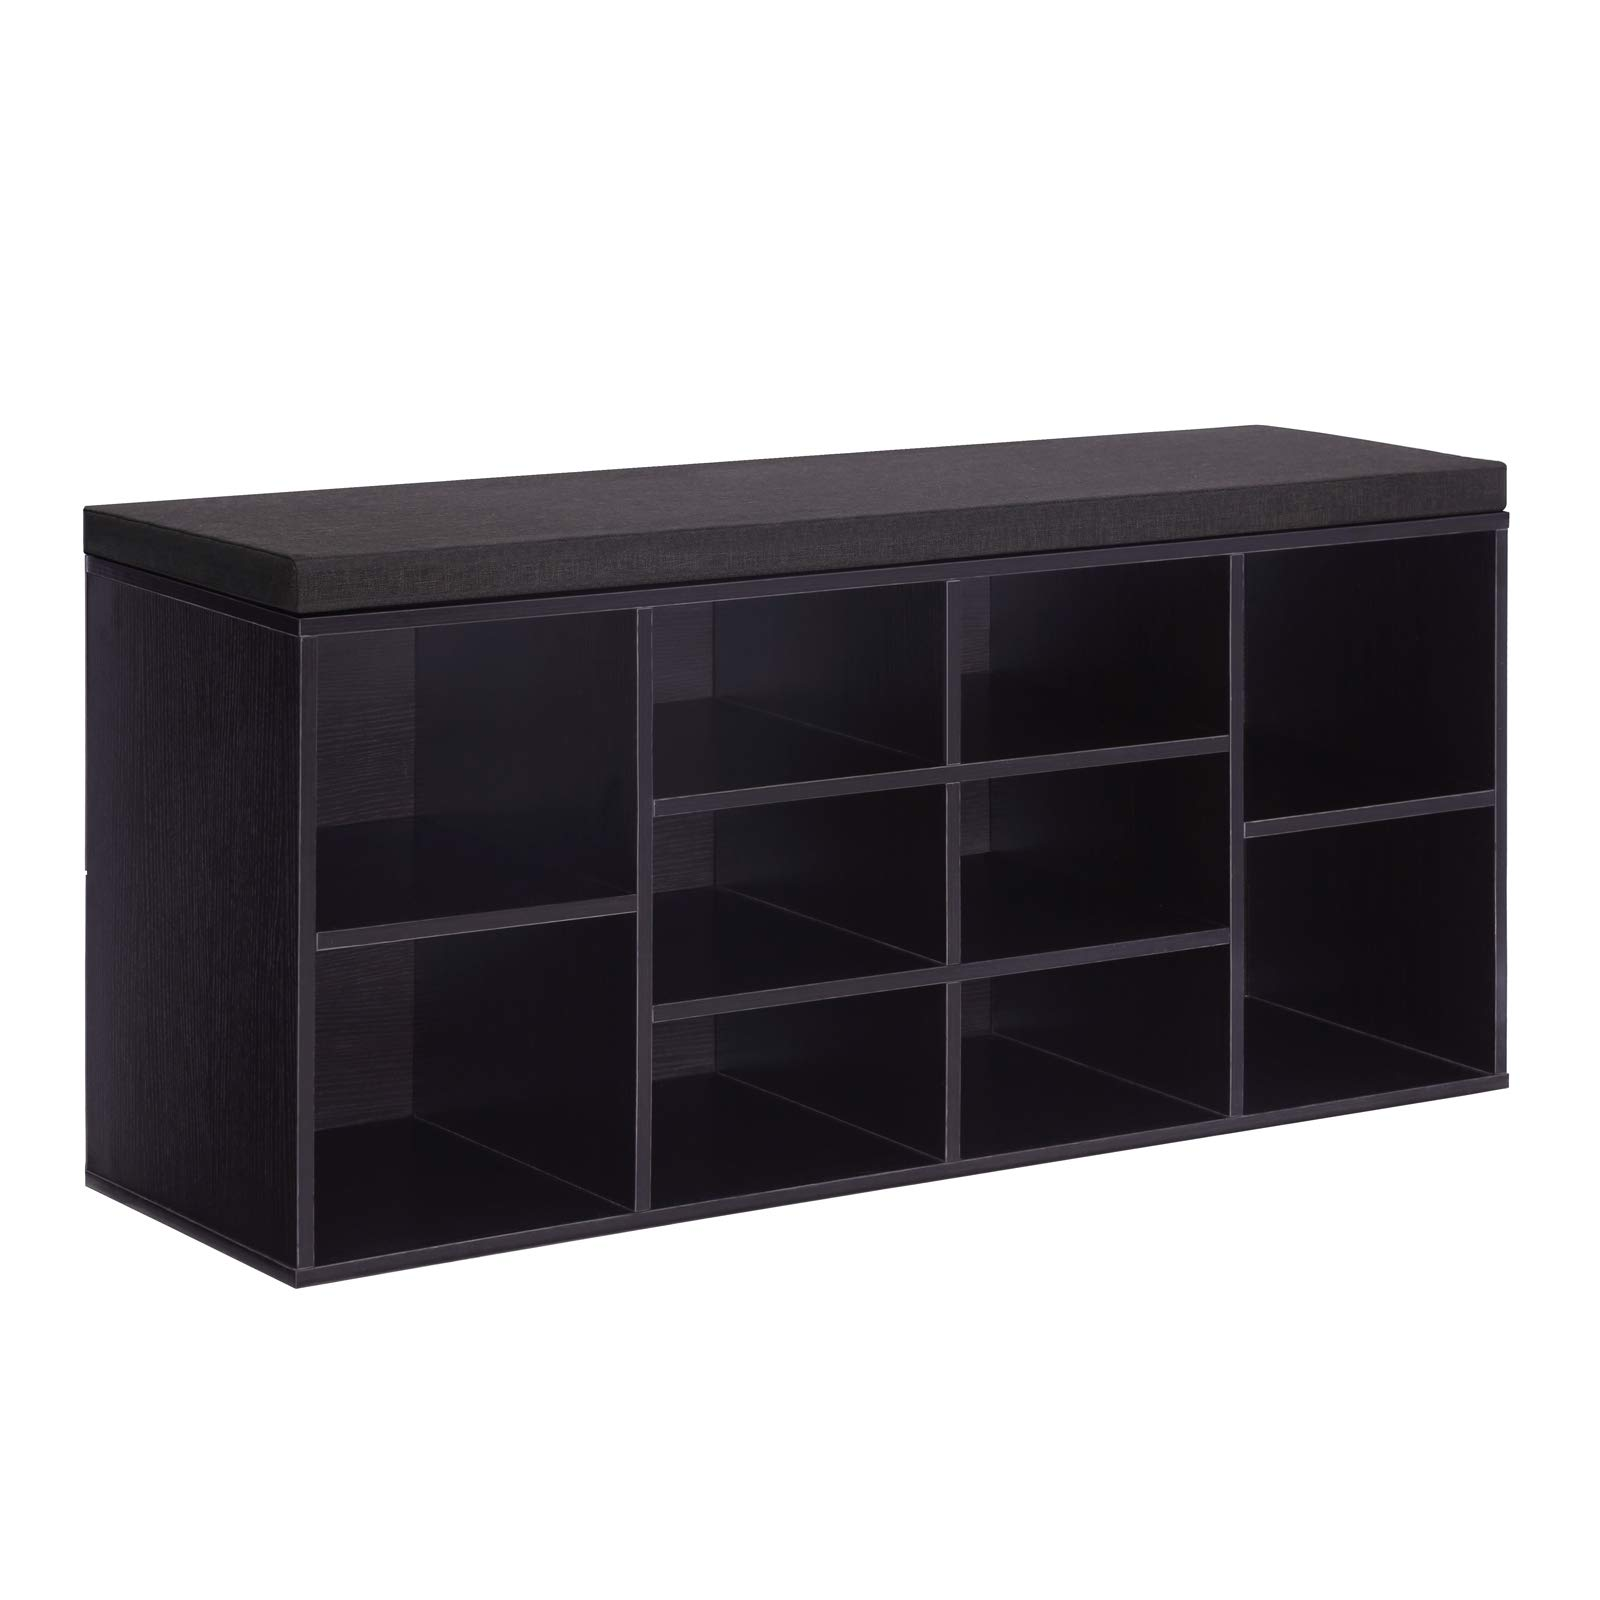 VASAGLE Cubbie Shoe Cabinet Storage Bench with Cushion, Adjustable Shelves, Holds up to 440lb, Ebony, ULHS10BR by VASAGLE